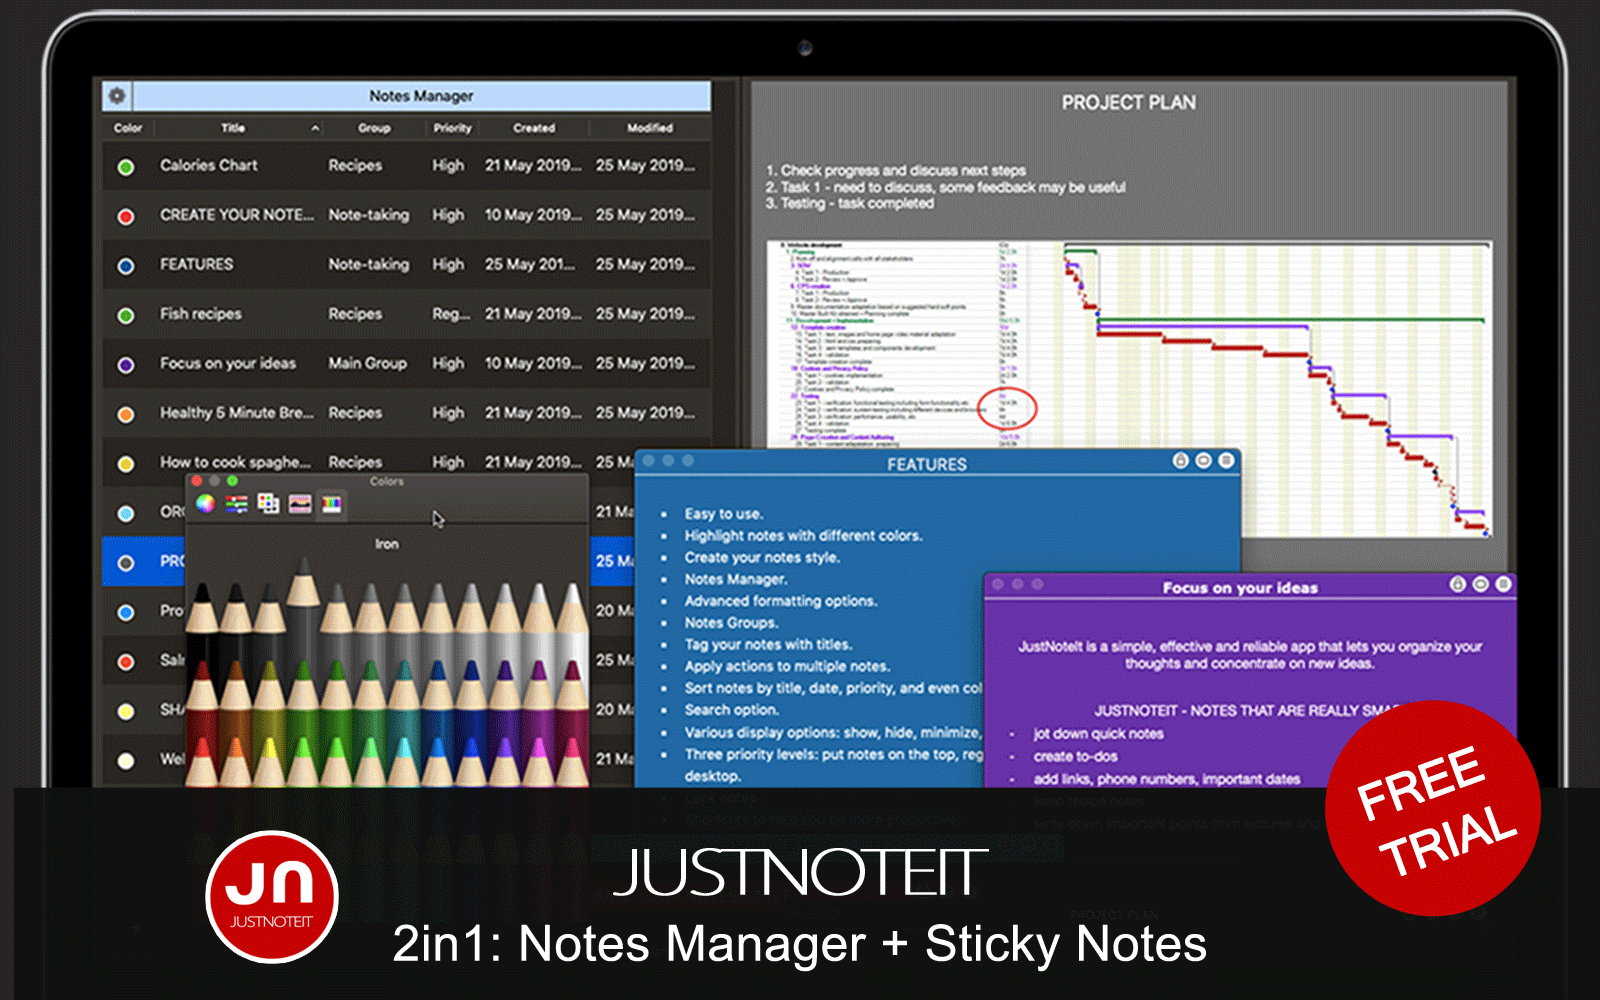 JustNoteIt - Note Manager 2in1